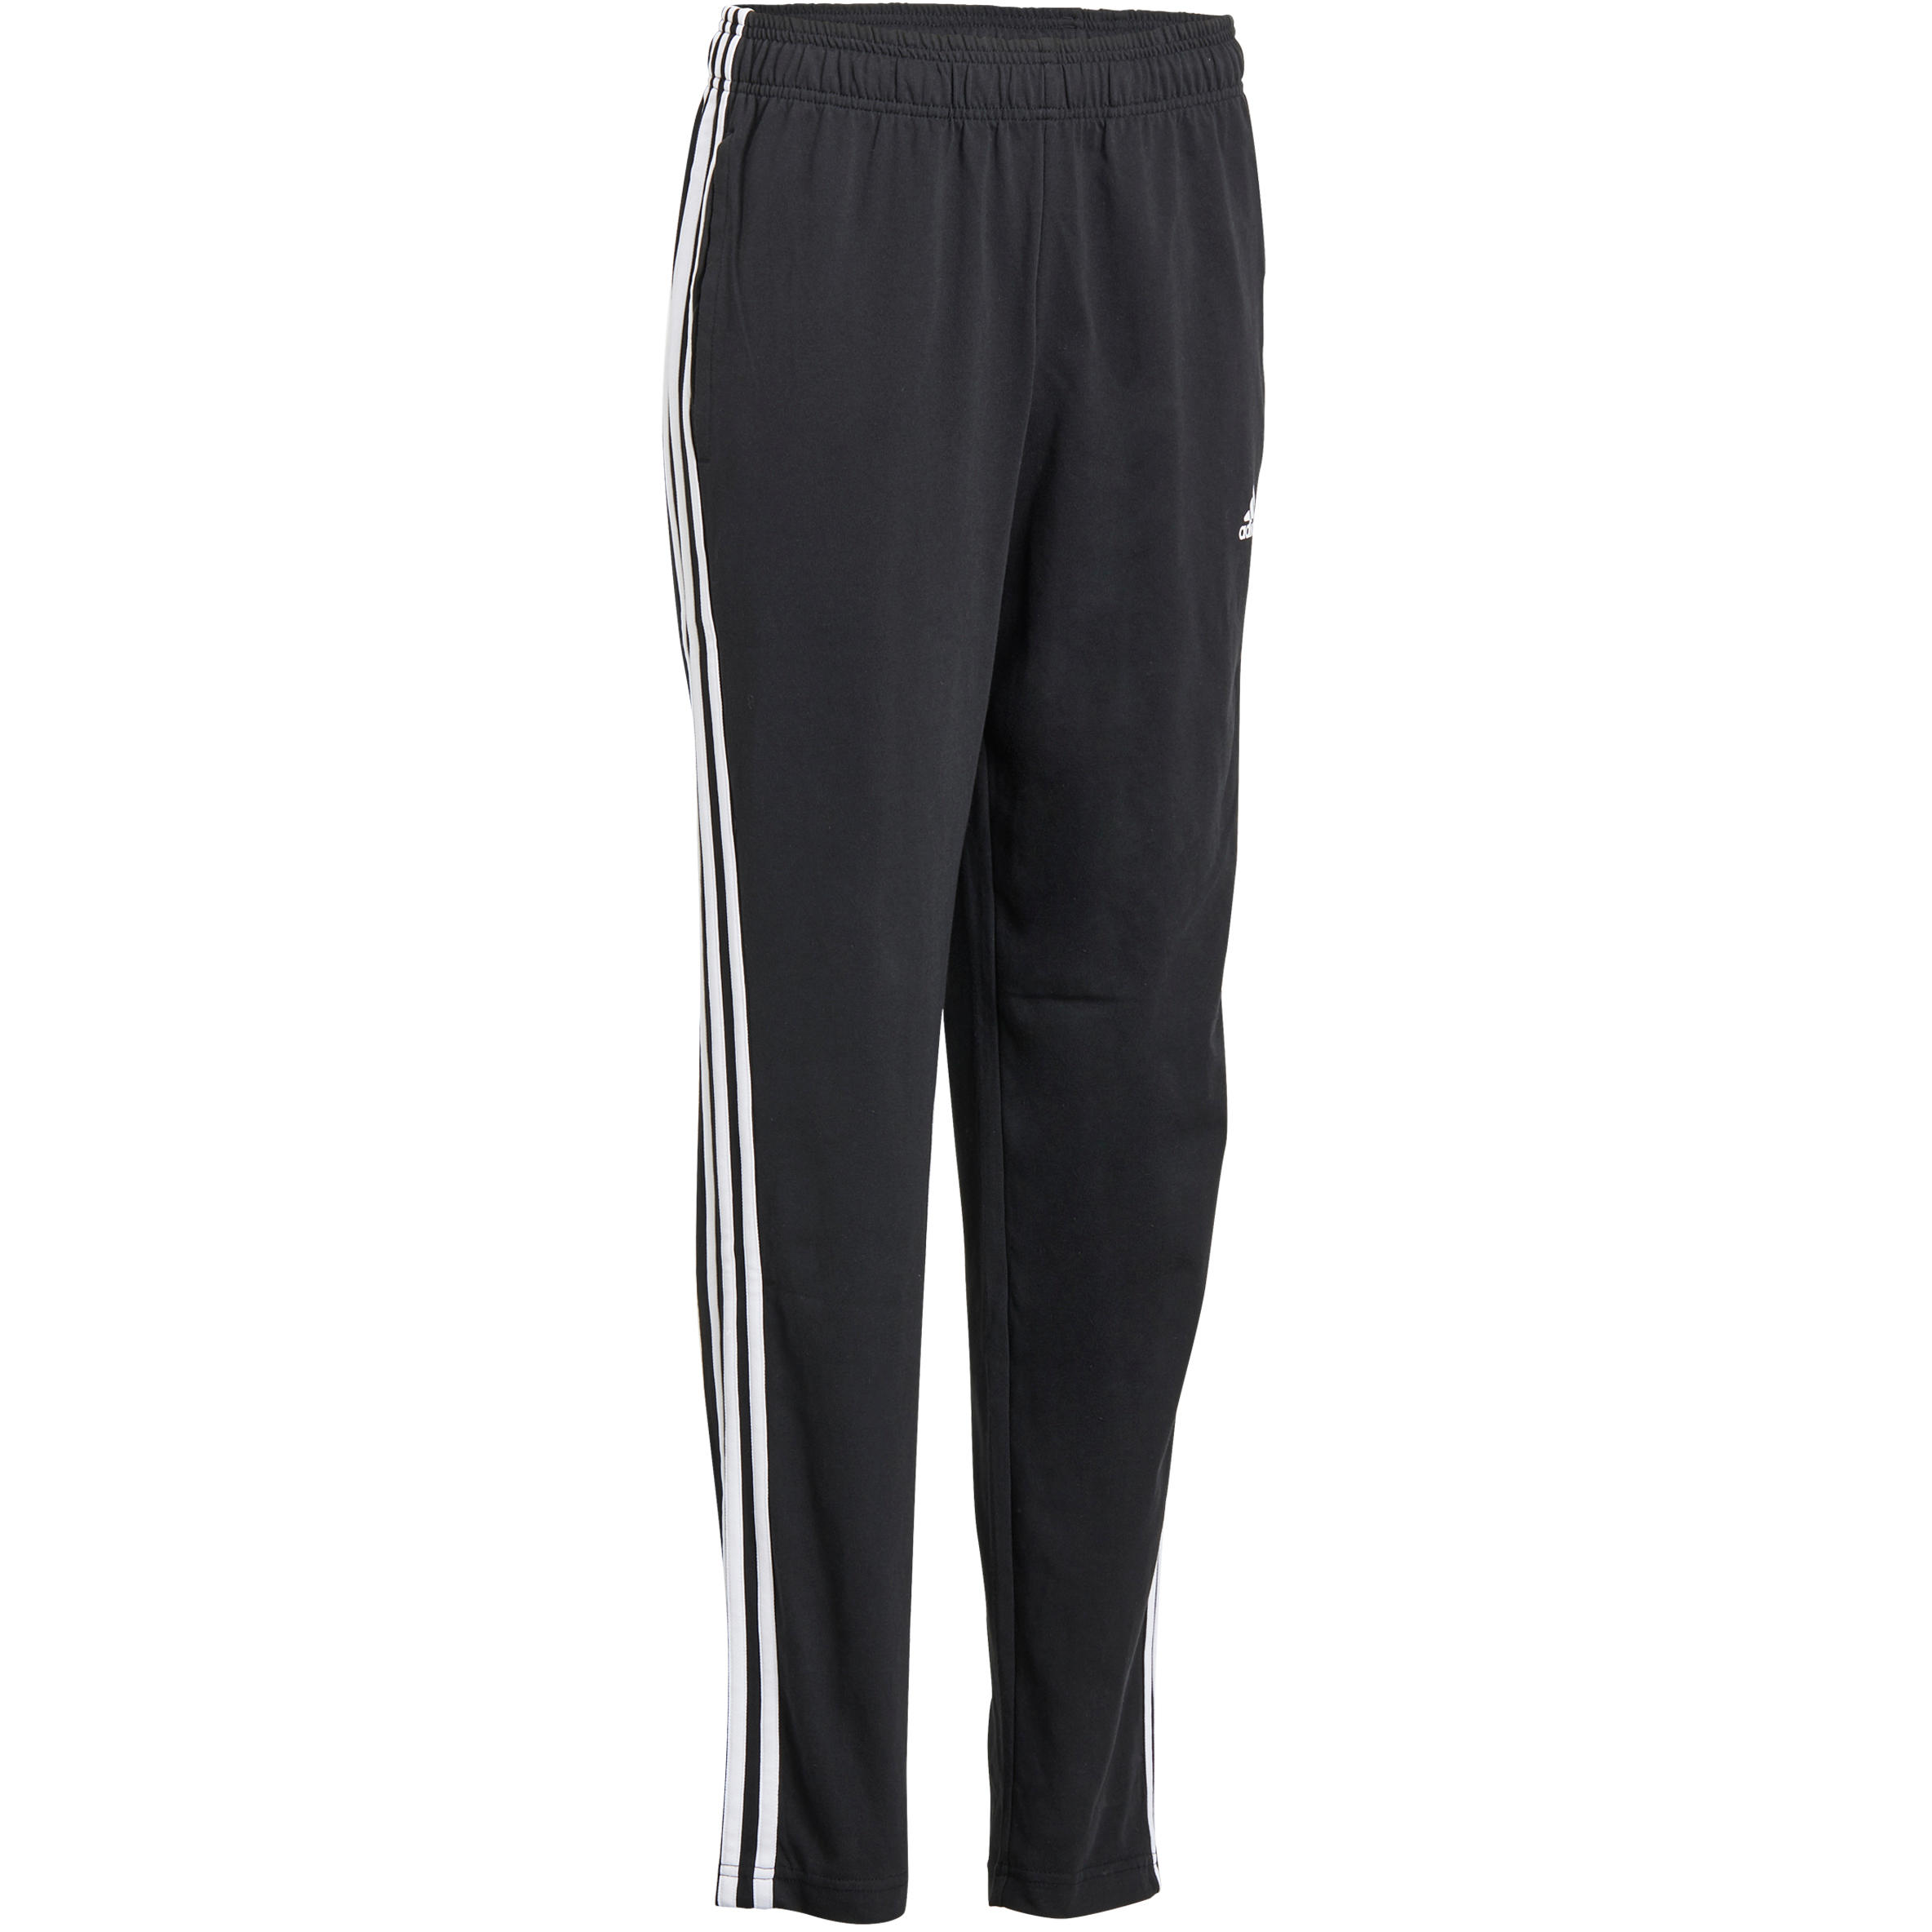 ADIDAS PERFORMANCE joggingbroek »ESSENTIALS 3S TAPERED SINGLE JERSEY PANT«